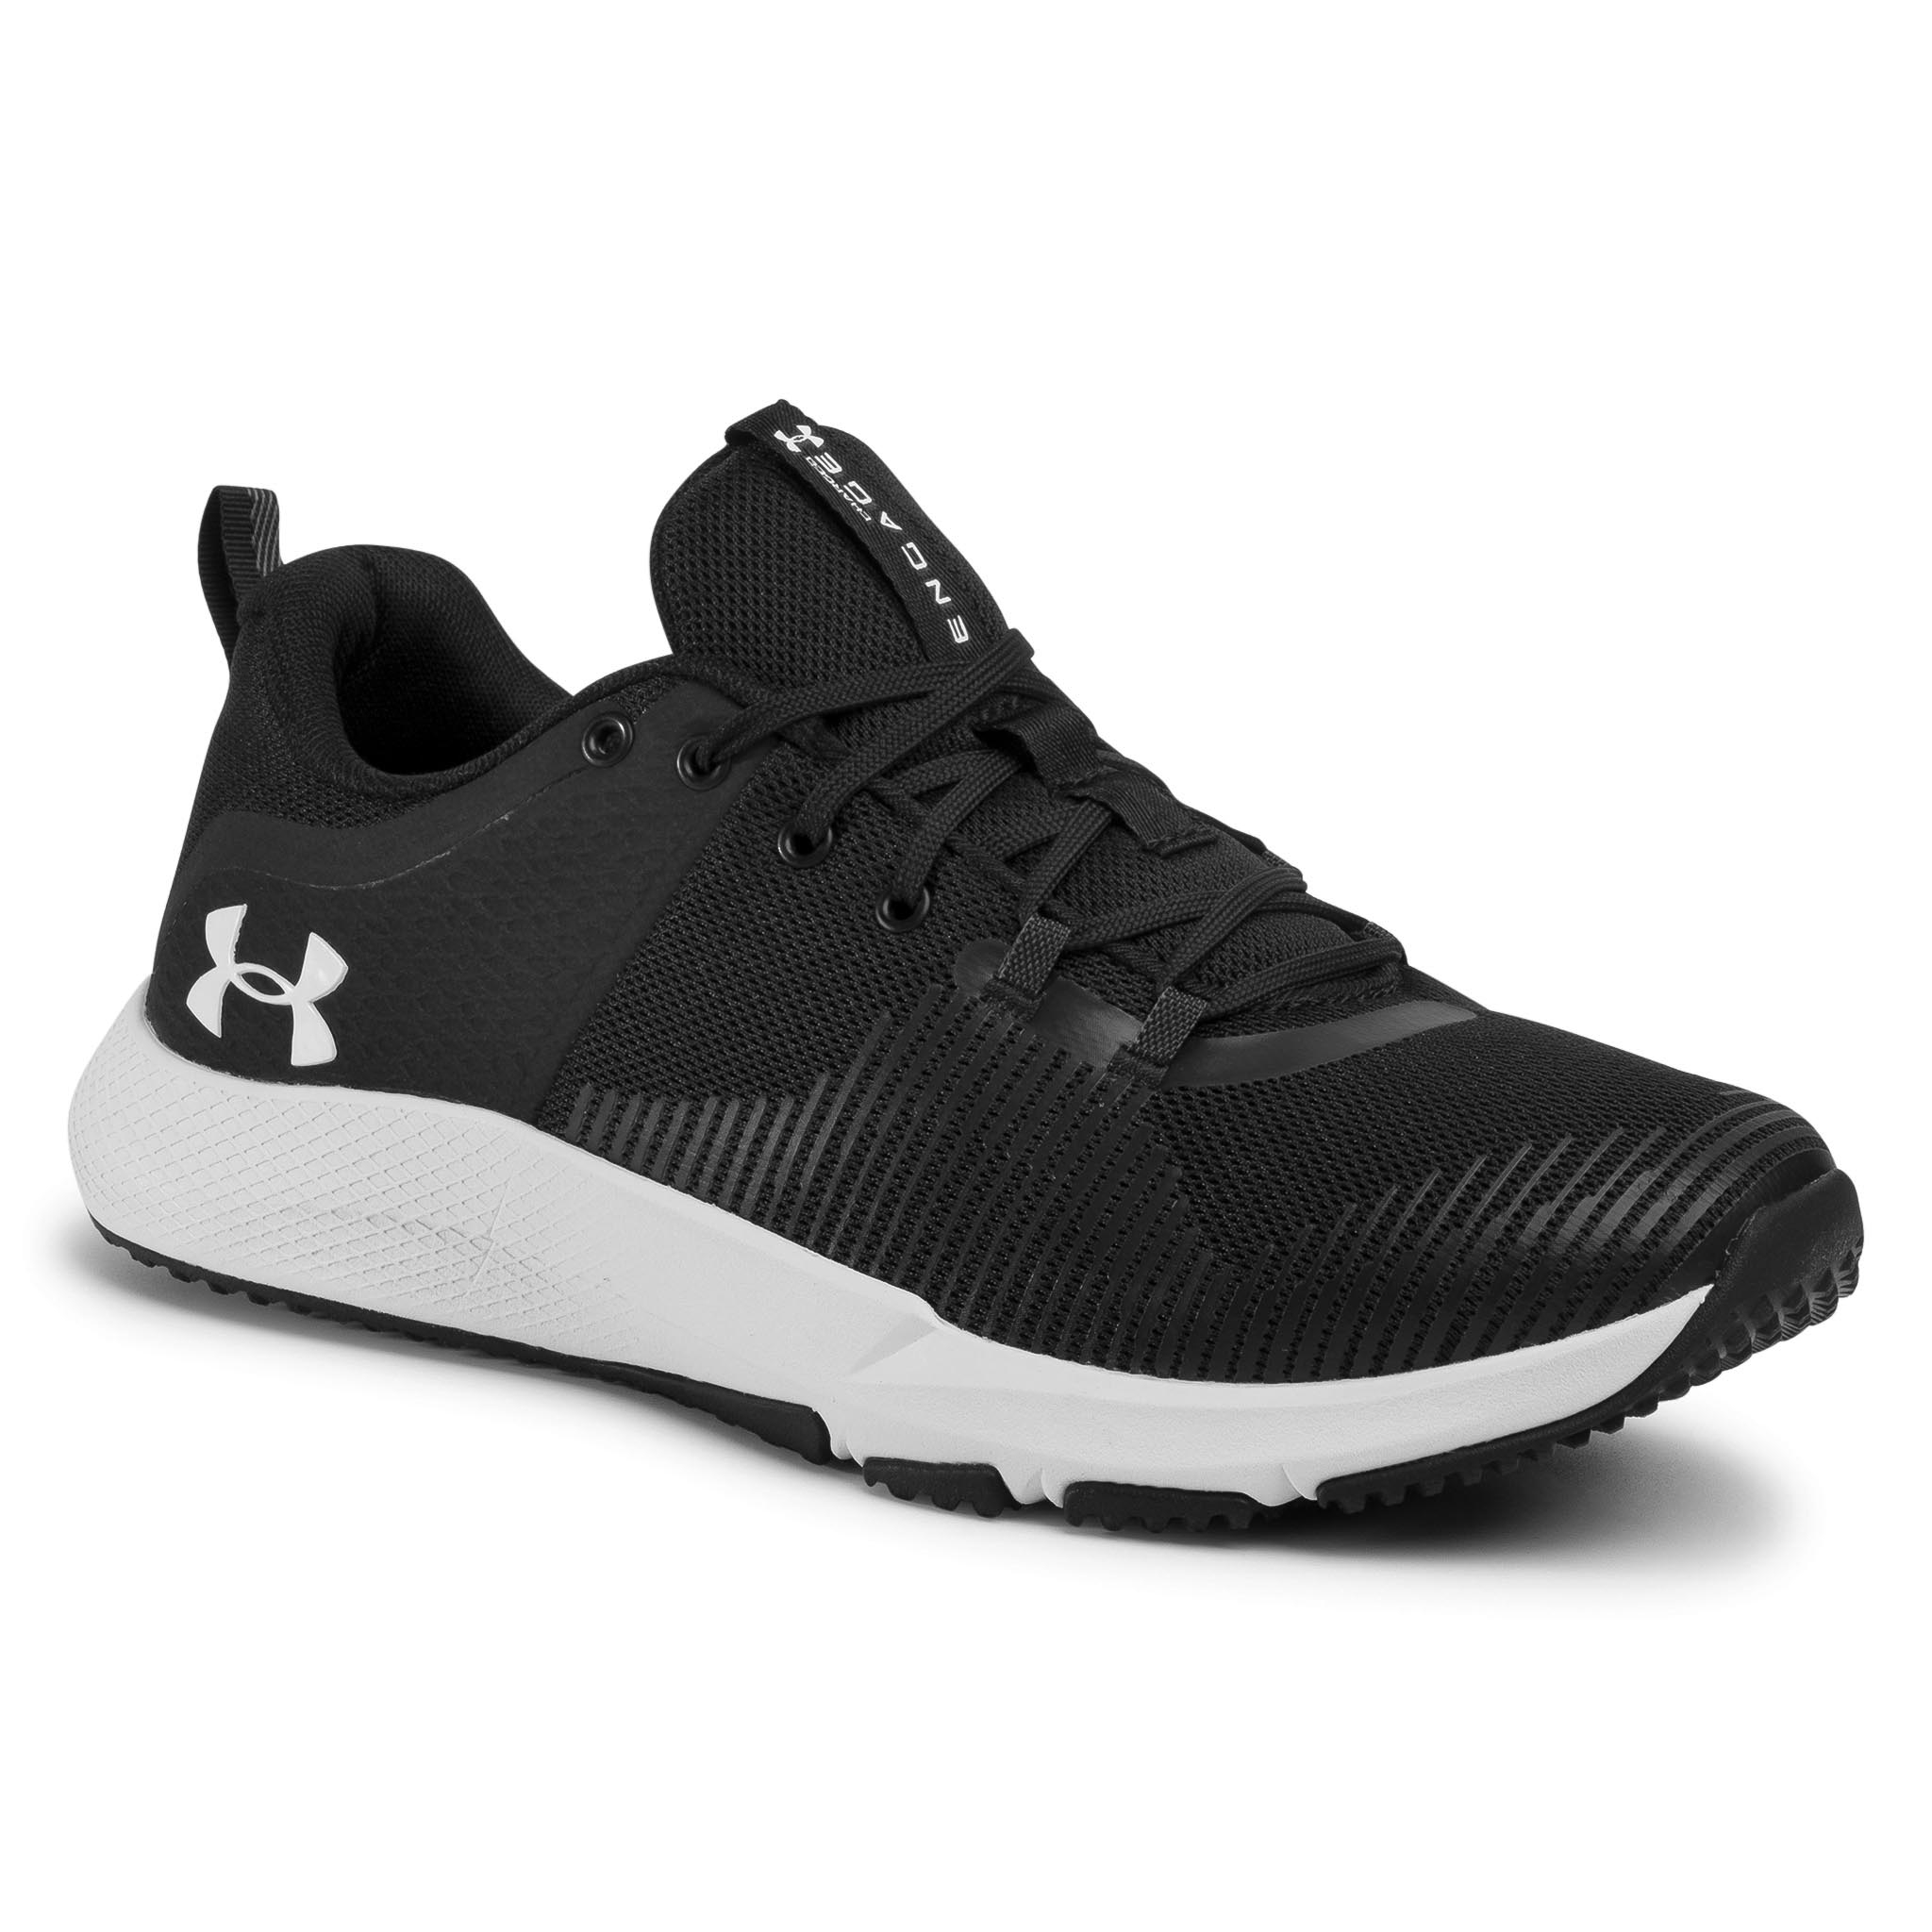 Pantofi UNDER ARMOUR - Ua Charged Engage 3022616-001 Blk